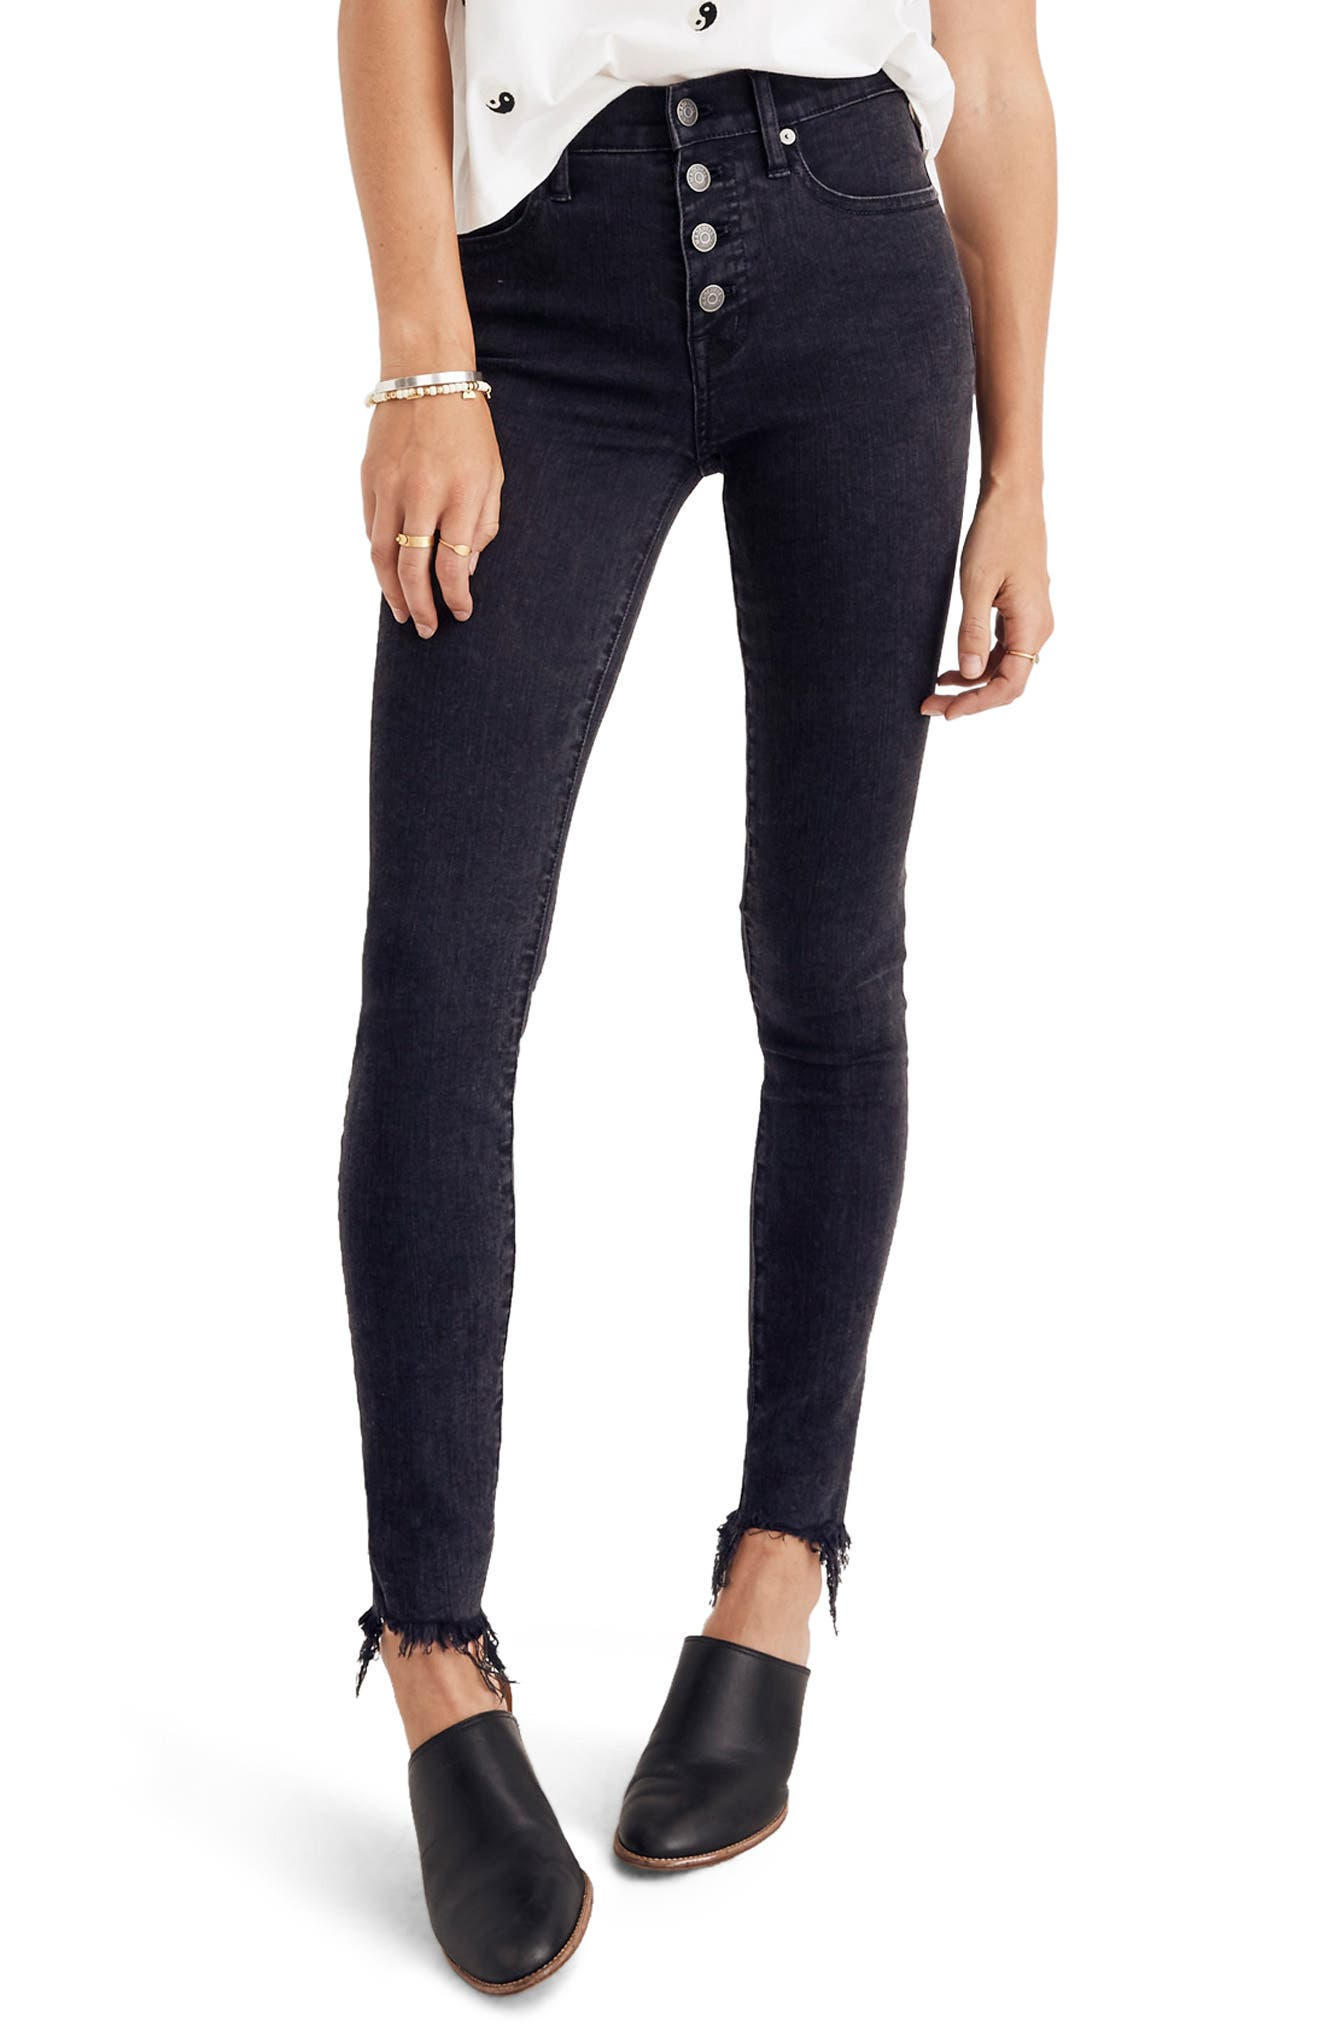 Madewell 9-Inch Button High Waist Ankle Skinny Jeans (Berkeley Wash) (Regular & Plus Size)